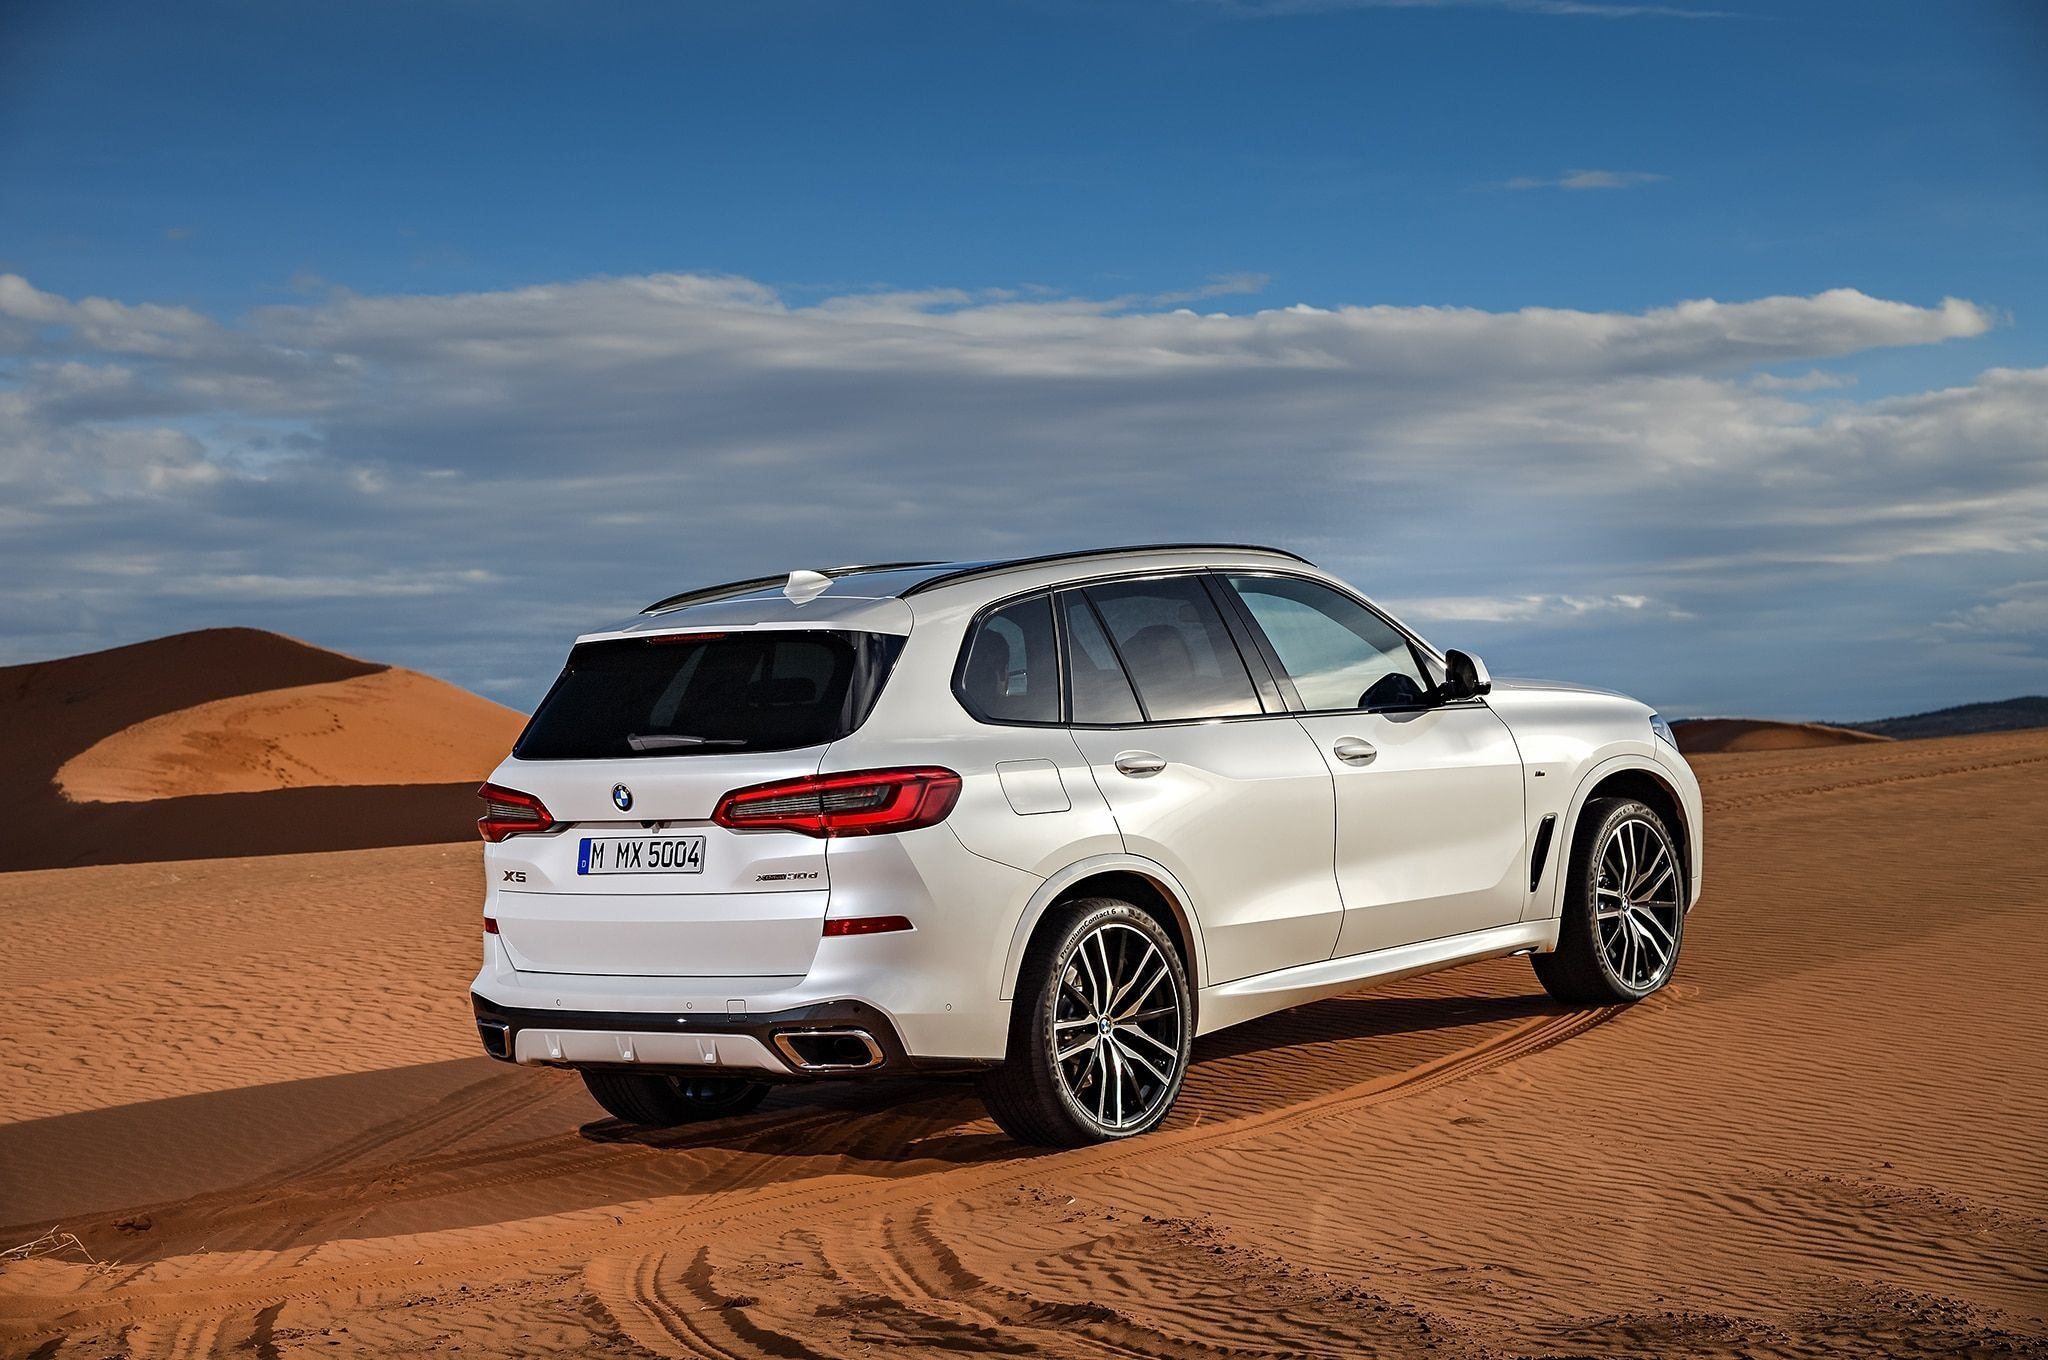 Best Bmw X5 Plug In Hybrid 2019 Concept Cars Release 2019 2019 Bmw X5 Xdrive45e Plugin Hybrid Revealed Efficiency Meets Supremacy The Drive Portfolio Of The